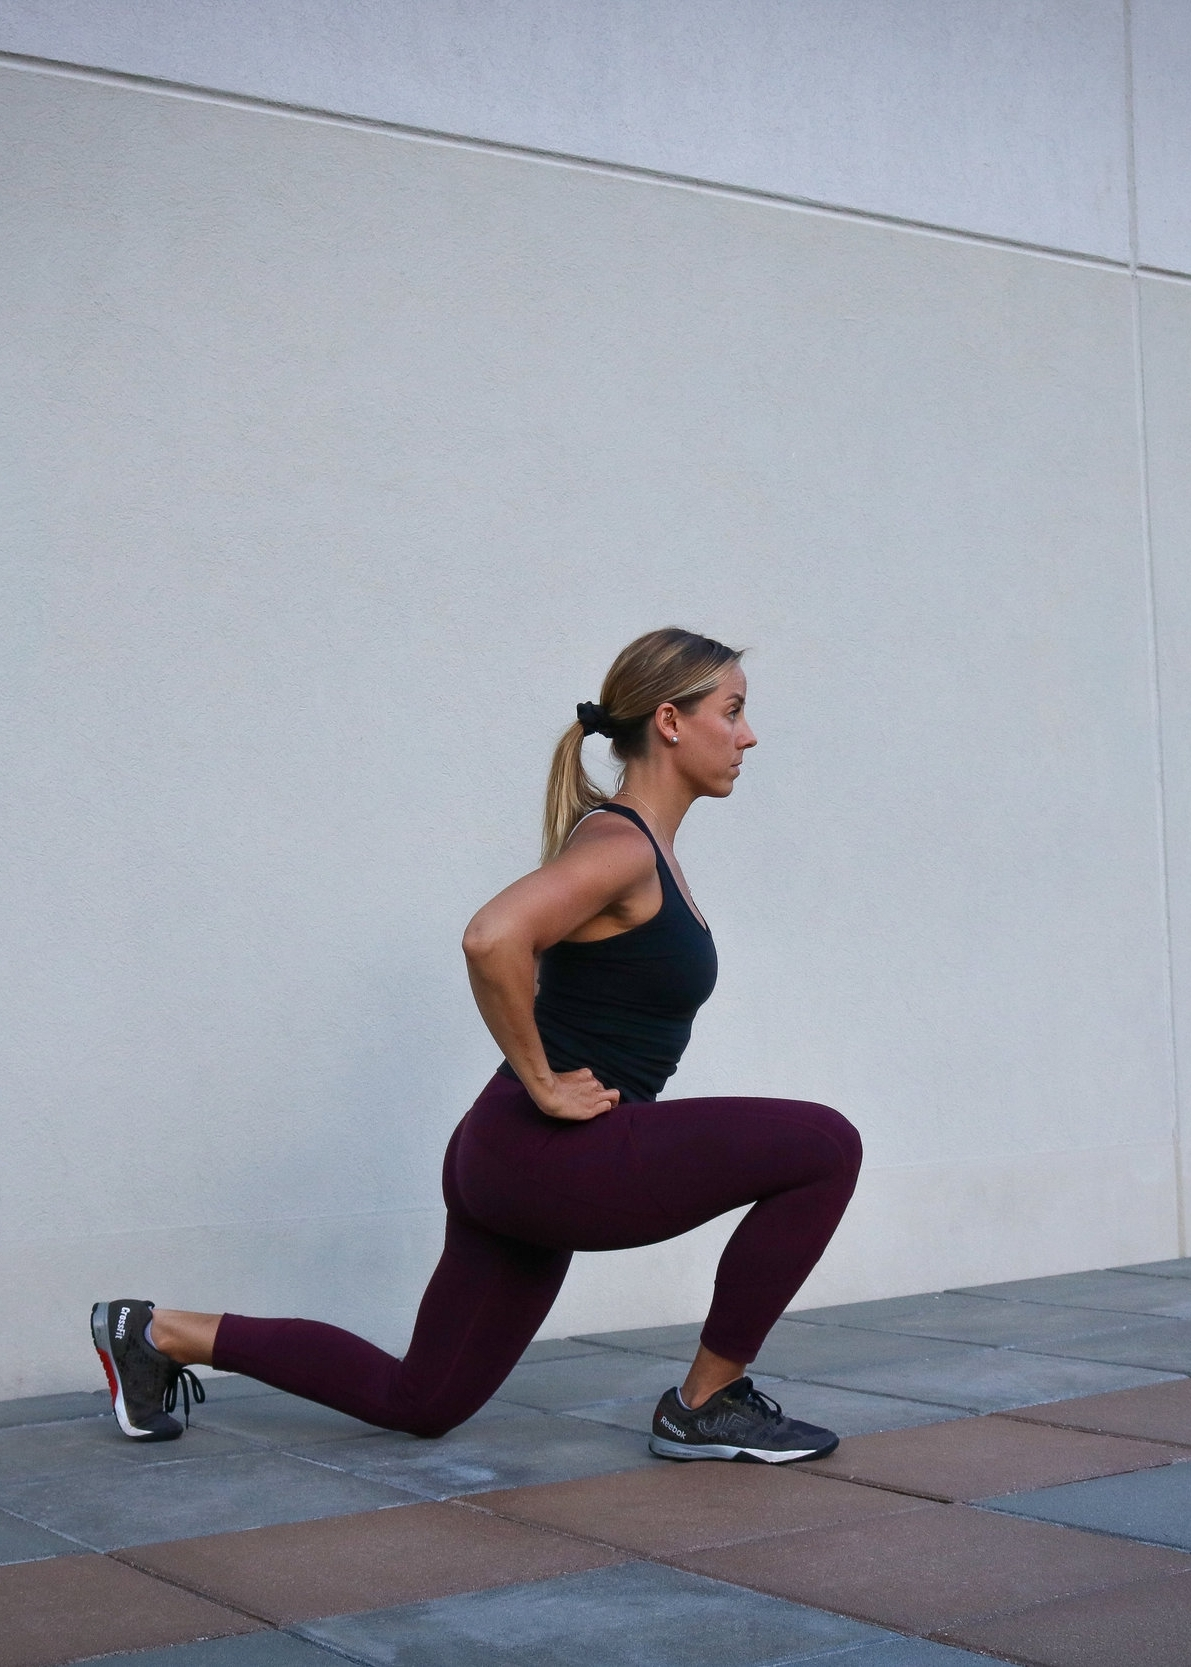 Bottom position of the lunge